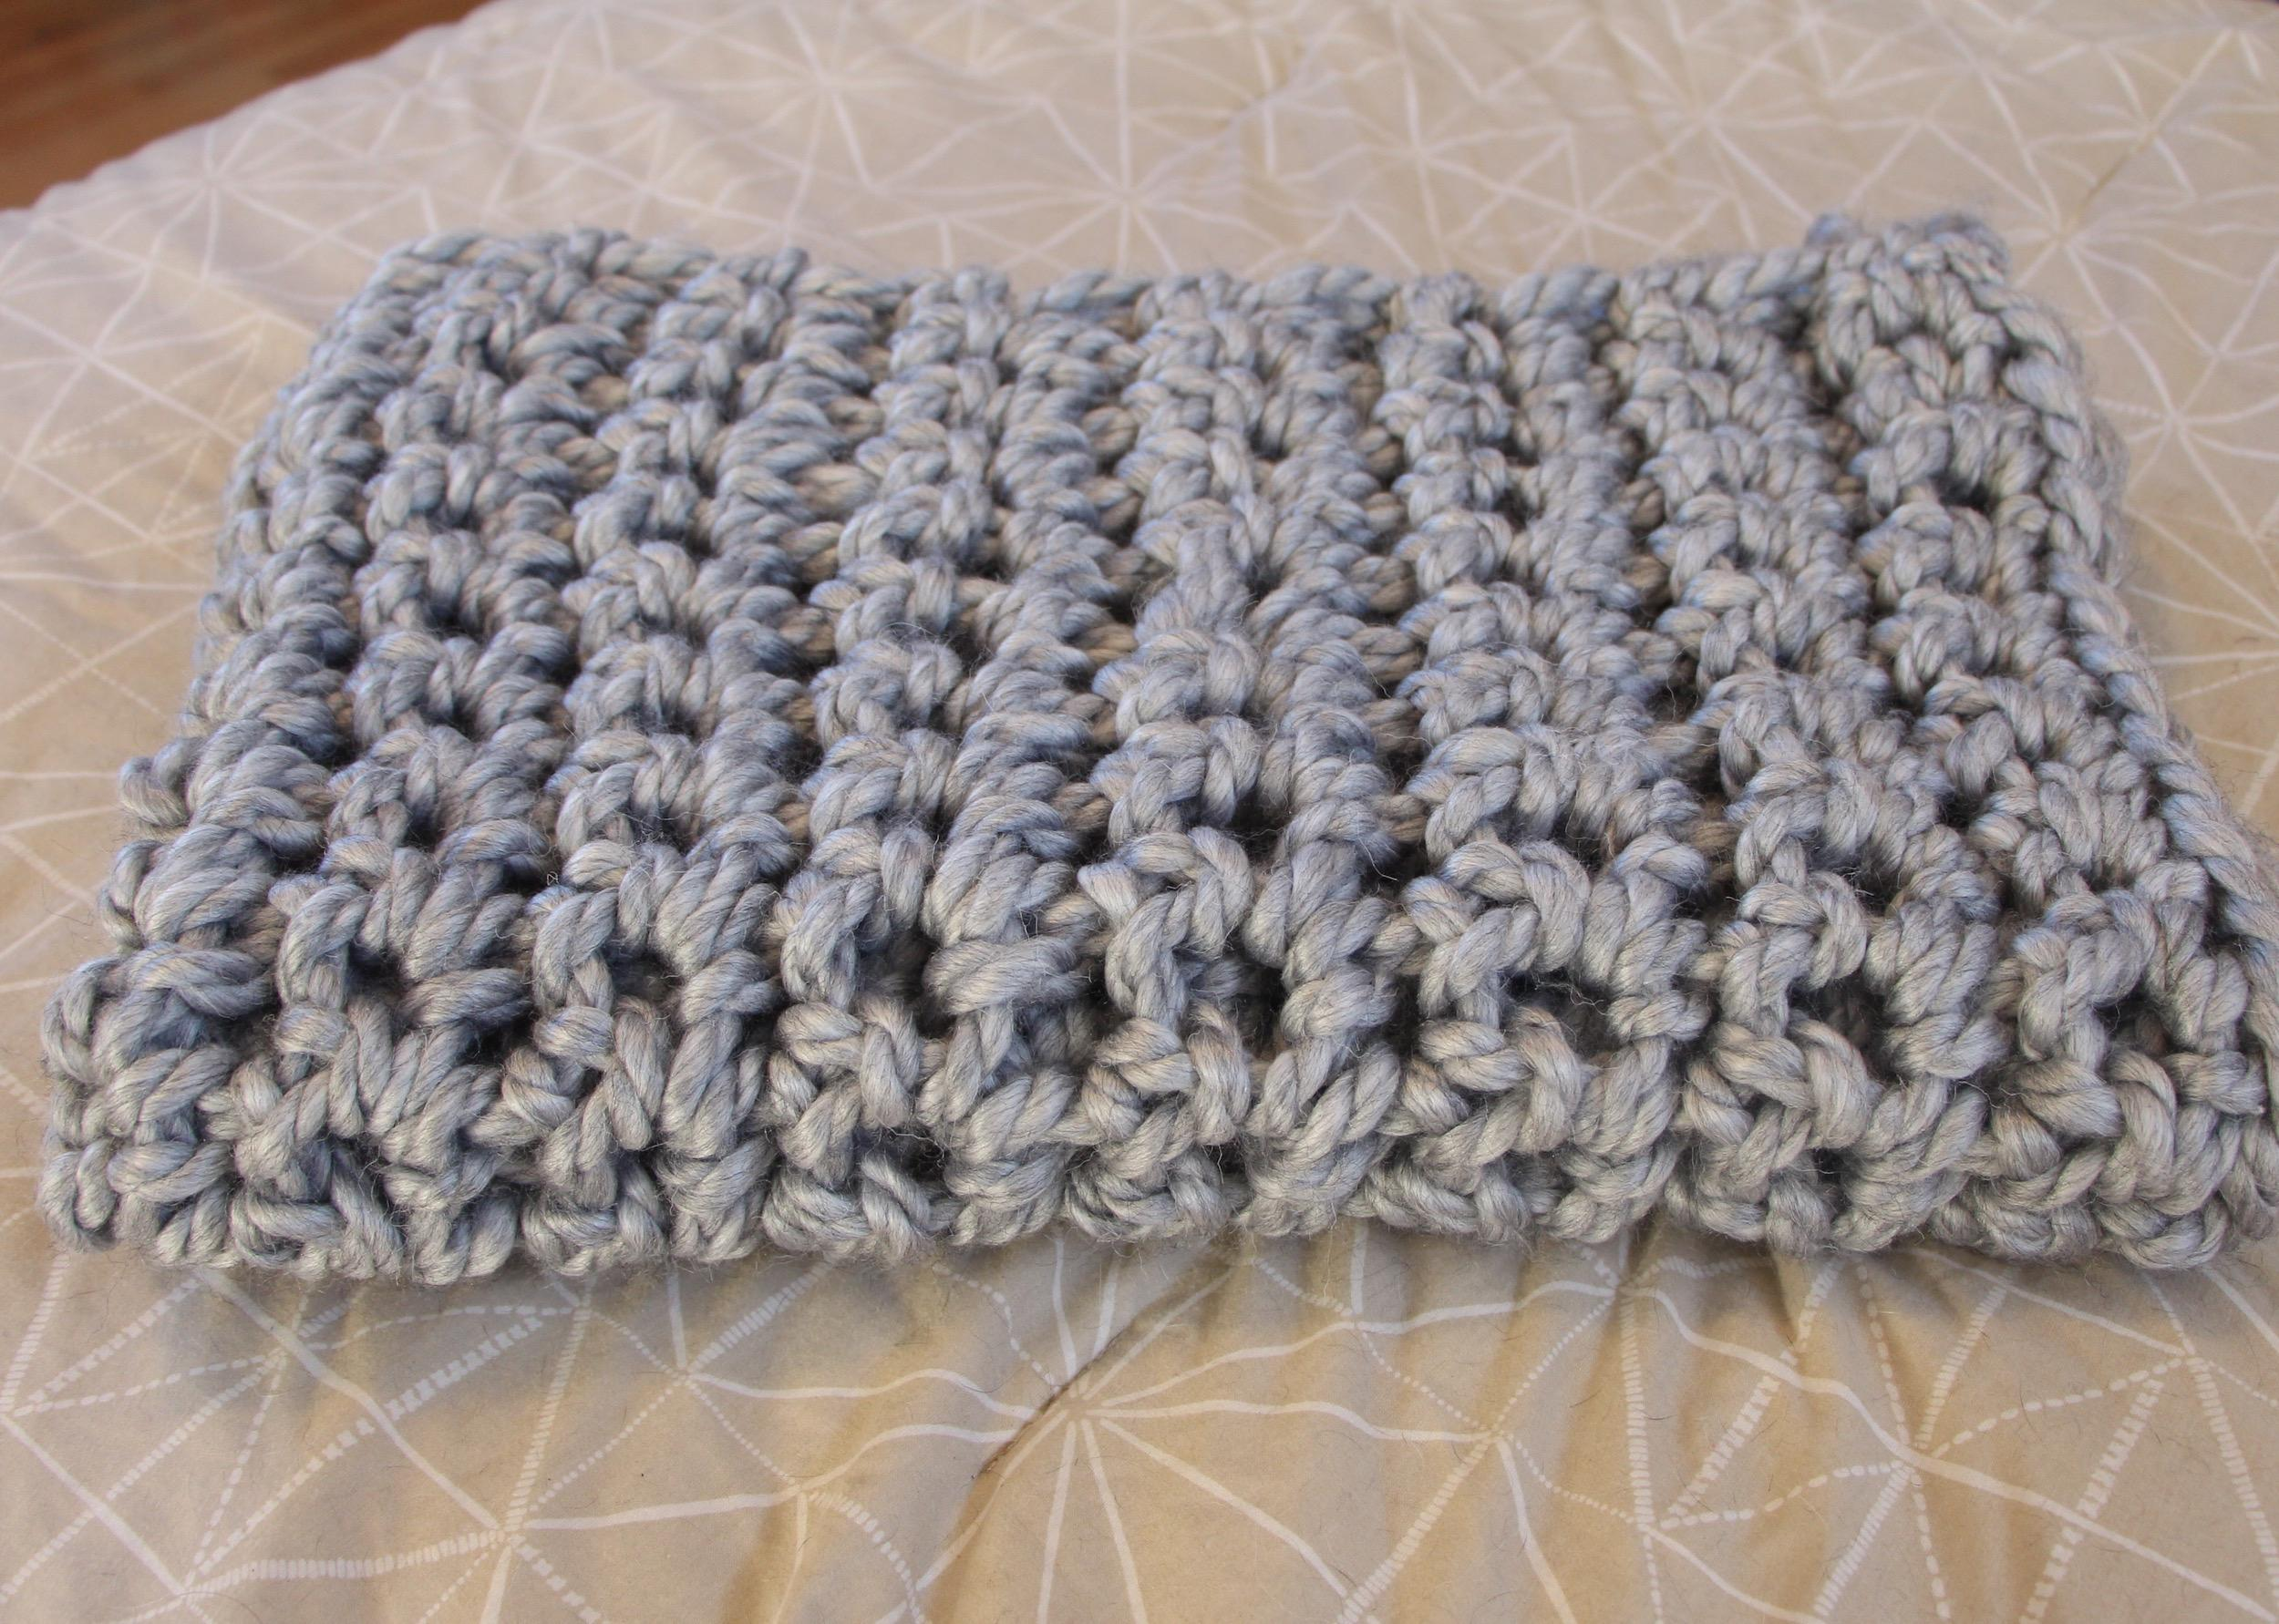 Hand Crochet A Blanket Without A Hook Cara Corey Skillshare